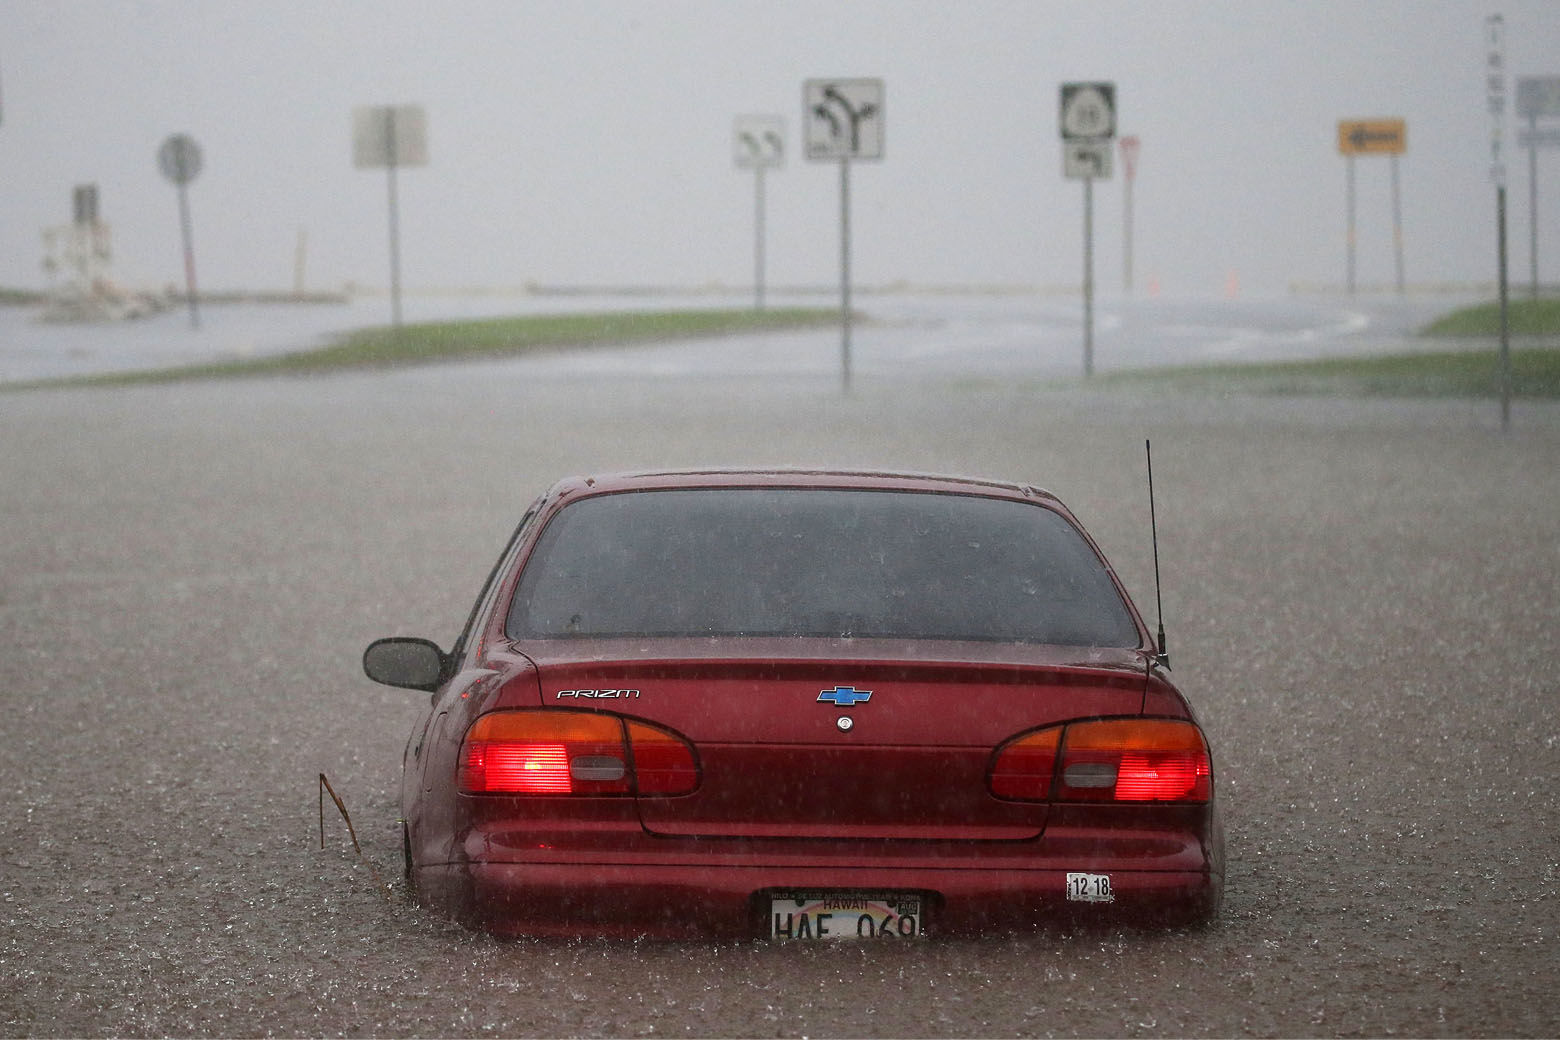 HILO, HI - AUGUST 23:  A car is stuck partially submerged in floodwaters from Hurricane Lane rainfall on the Big Island on August 23, 2018 in Hilo, Hawaii. Hurricane Lane has brought more than a foot of rain to some parts of the Big Island which is under a flash flood warning. (Photo by Mario Tama/Getty Images)